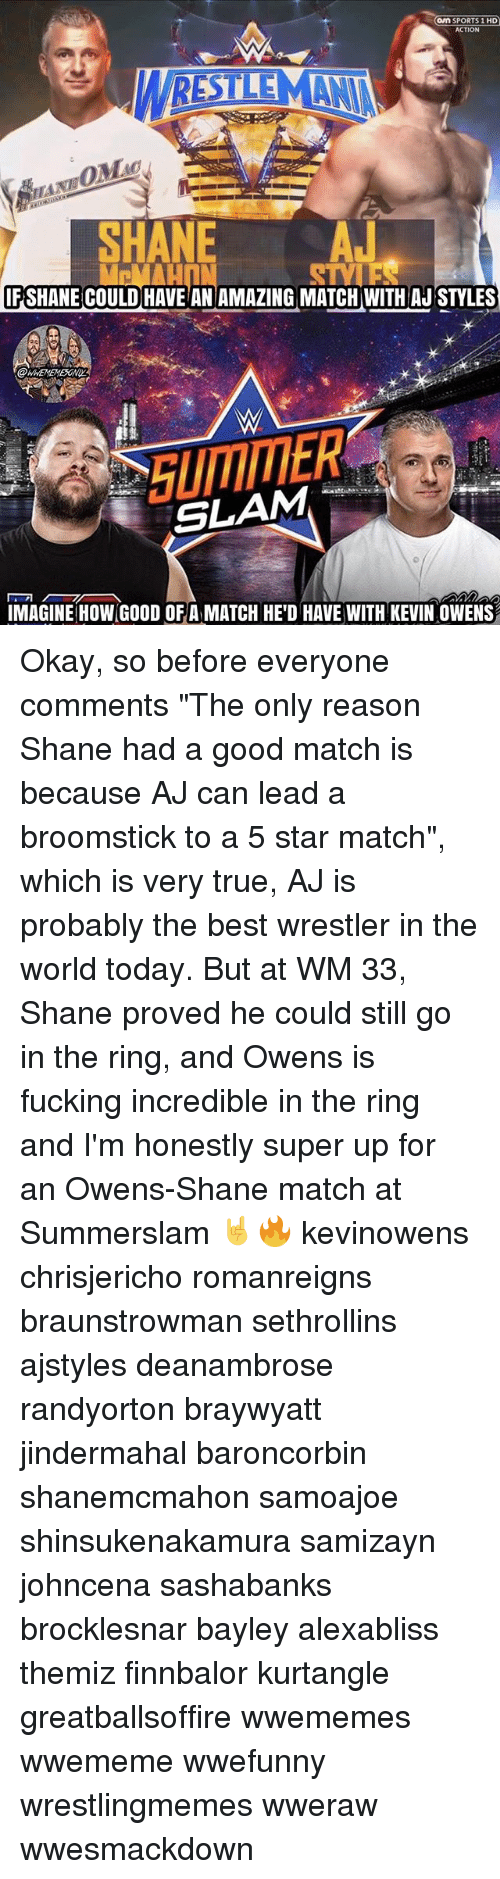 "Broomstick, Fucking, and Memes: on SPORTS 1 HD  ACTION  SNE A  HA  FSHANE COULD HAVE ANAMAZING MATCH WITH AJ STYLES  SLAM-' 개  IMAGINE HOW GOOD OFA MATCH HE'D HAVE WITH KEVIN OWENS Okay, so before everyone comments ""The only reason Shane had a good match is because AJ can lead a broomstick to a 5 star match"", which is very true, AJ is probably the best wrestler in the world today. But at WM 33, Shane proved he could still go in the ring, and Owens is fucking incredible in the ring and I'm honestly super up for an Owens-Shane match at Summerslam 🤘🔥 kevinowens chrisjericho romanreigns braunstrowman sethrollins ajstyles deanambrose randyorton braywyatt jindermahal baroncorbin shanemcmahon samoajoe shinsukenakamura samizayn johncena sashabanks brocklesnar bayley alexabliss themiz finnbalor kurtangle greatballsoffire wwememes wwememe wwefunny wrestlingmemes wweraw wwesmackdown"